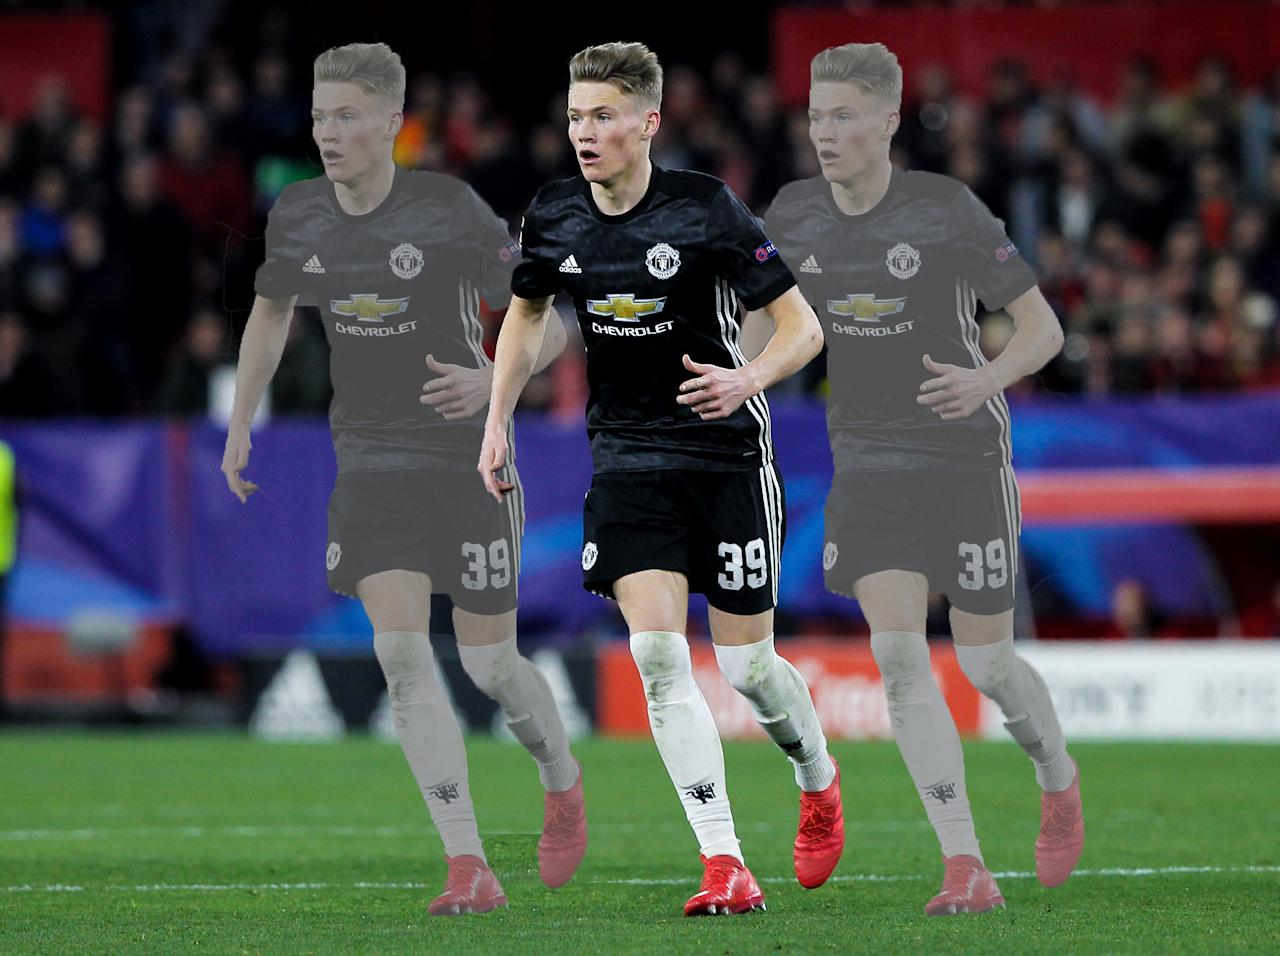 The paradox of Scott McTominay: the Manchester United player who does so little but matters so much